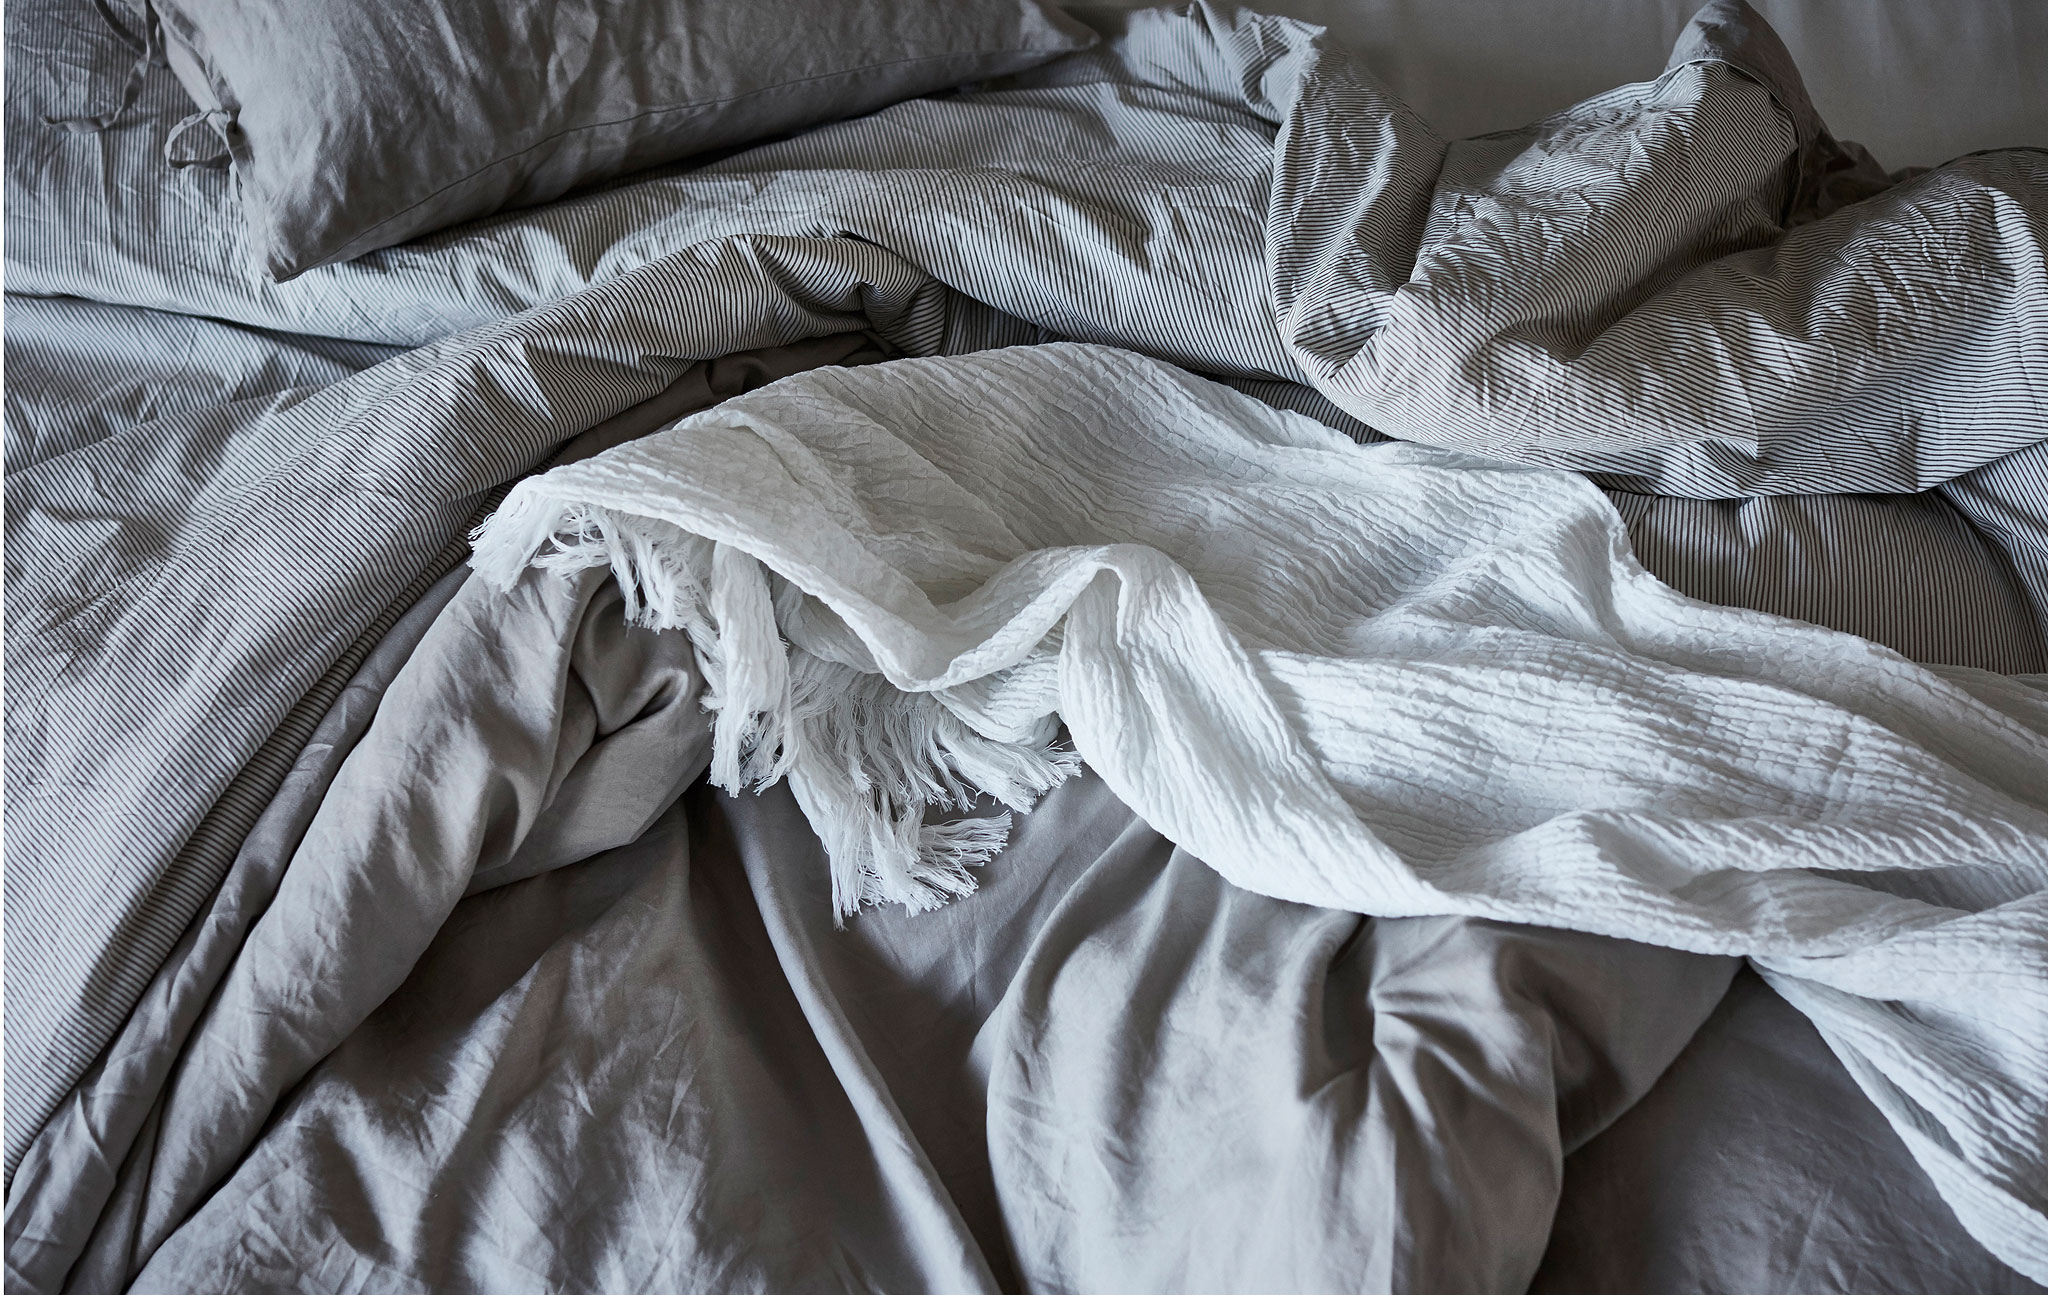 Section of an empty, slept-in bed with creased, fluffy, one-colour bedlinen; a throw untidily lying on top.